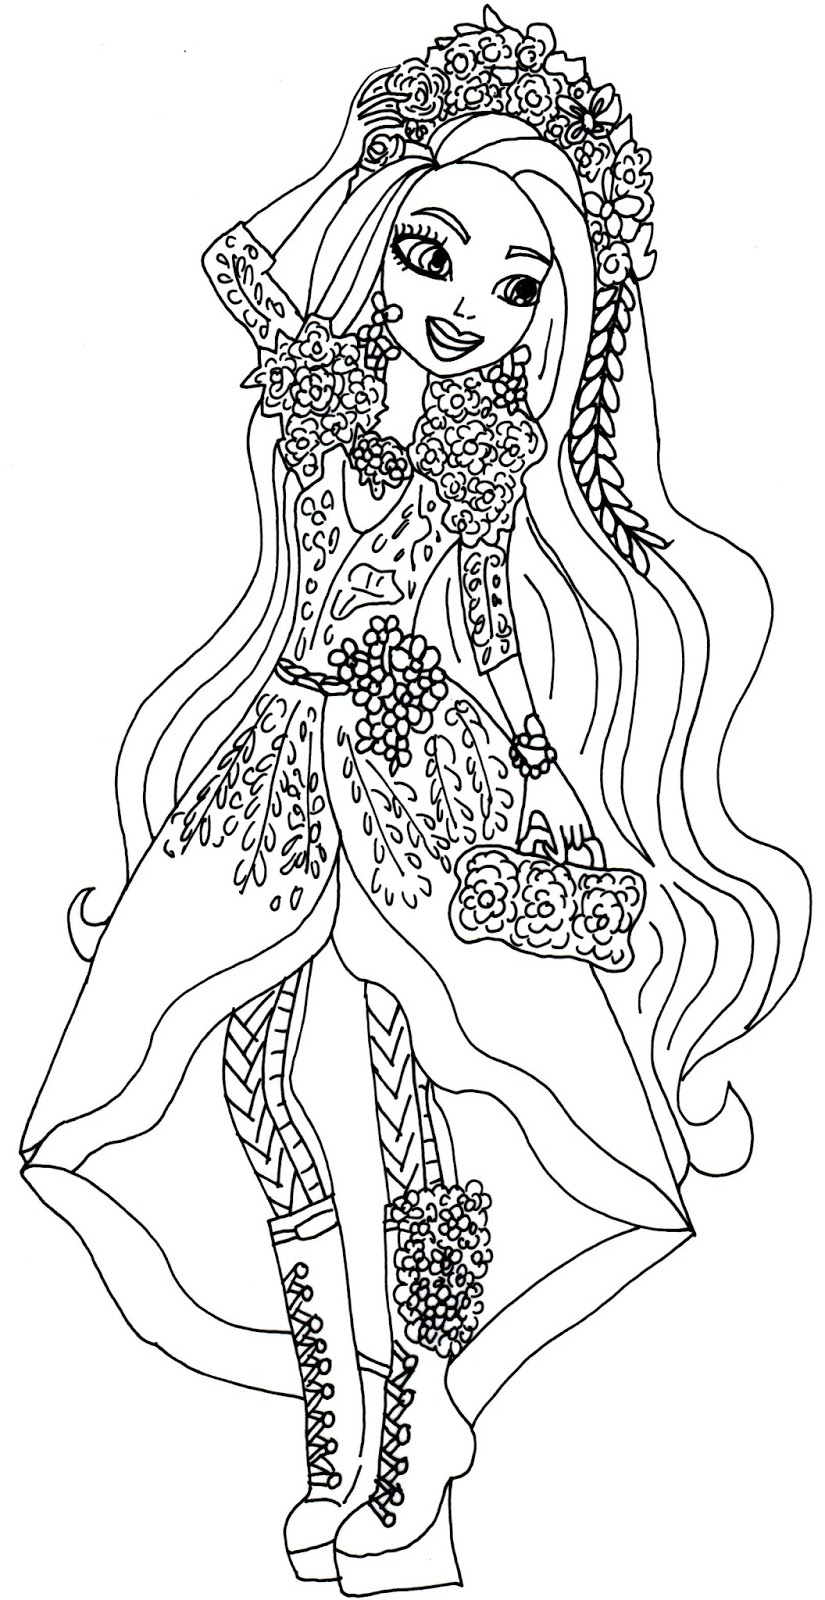 holly ohair coloring pages - photo#4